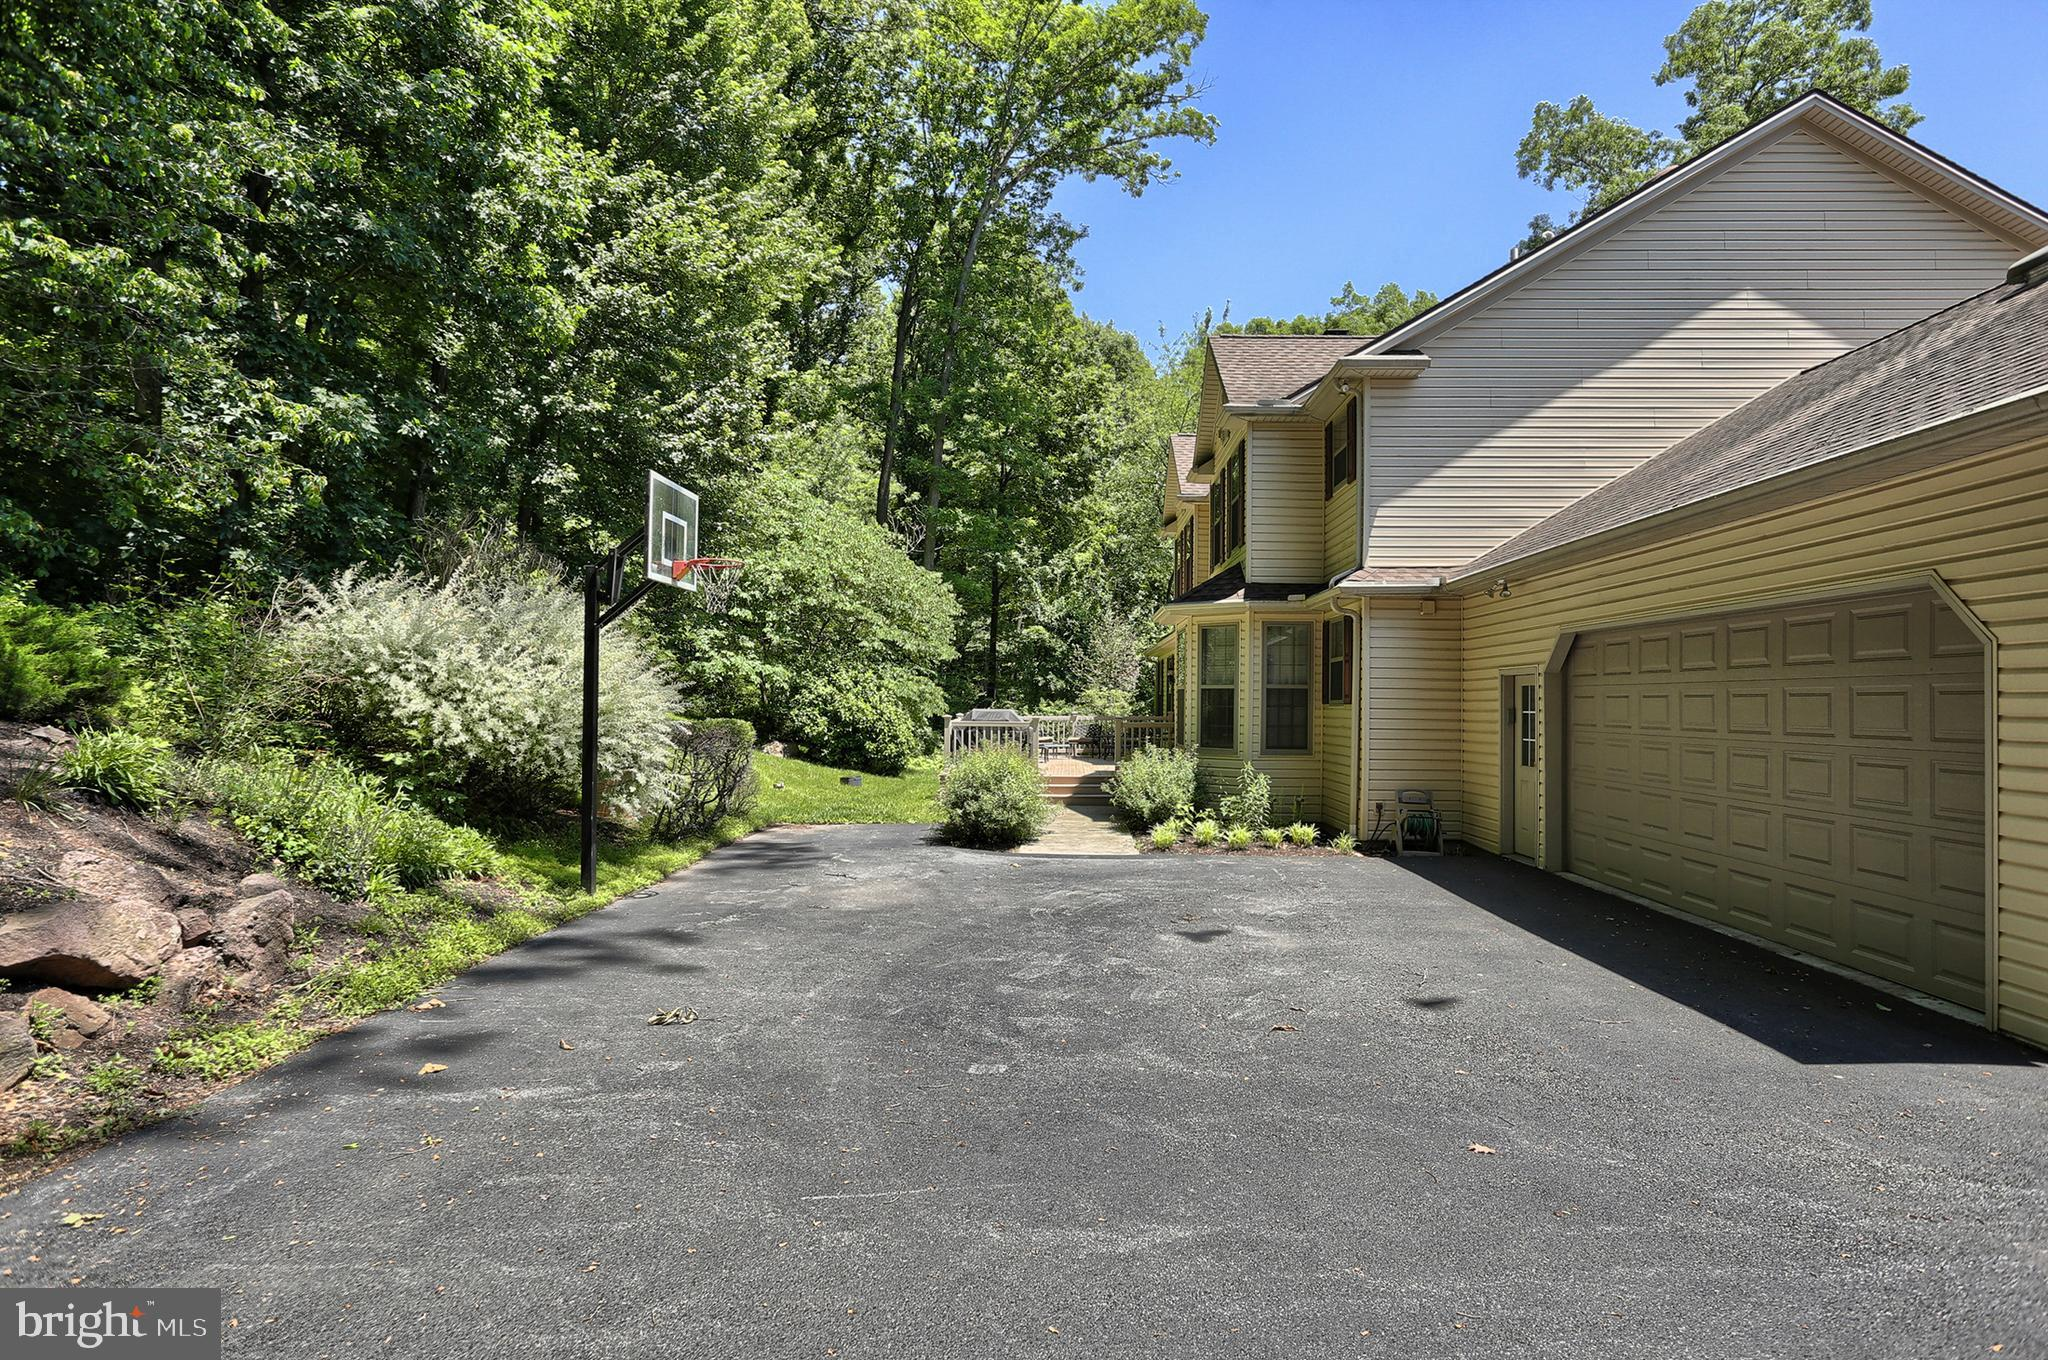 Driveway and garage entrance